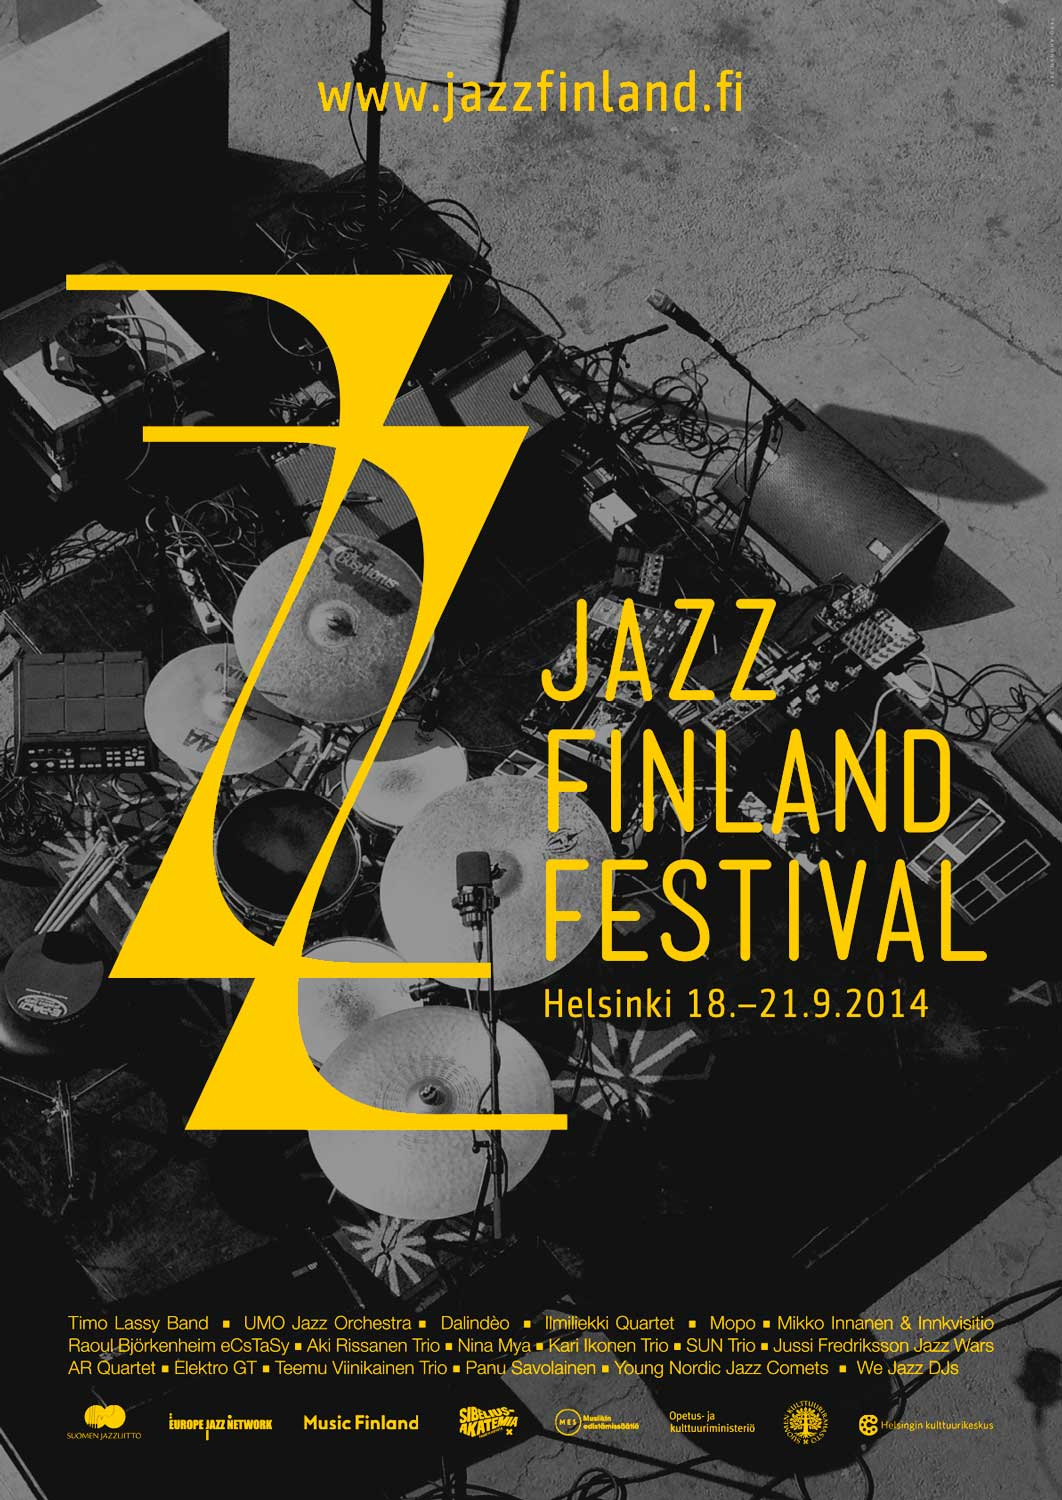 Jazz Finland Festival, poster by Tero Ahonen